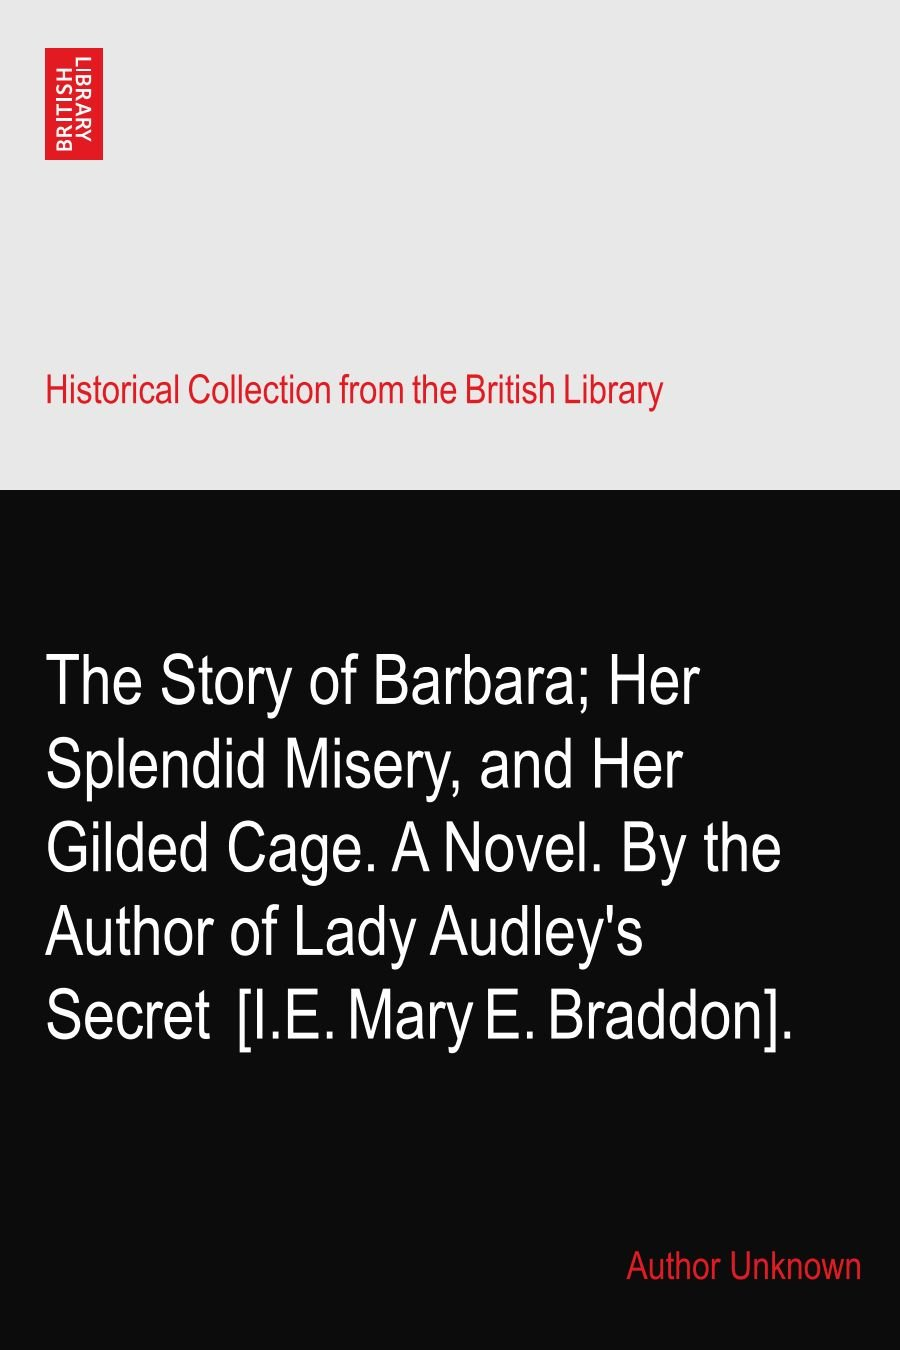 Read Online The Story of Barbara; Her Splendid Misery, and Her Gilded Cage. A Novel. By the Author of Lady Audley's Secret? [I.E. Mary E. Braddon]. ebook